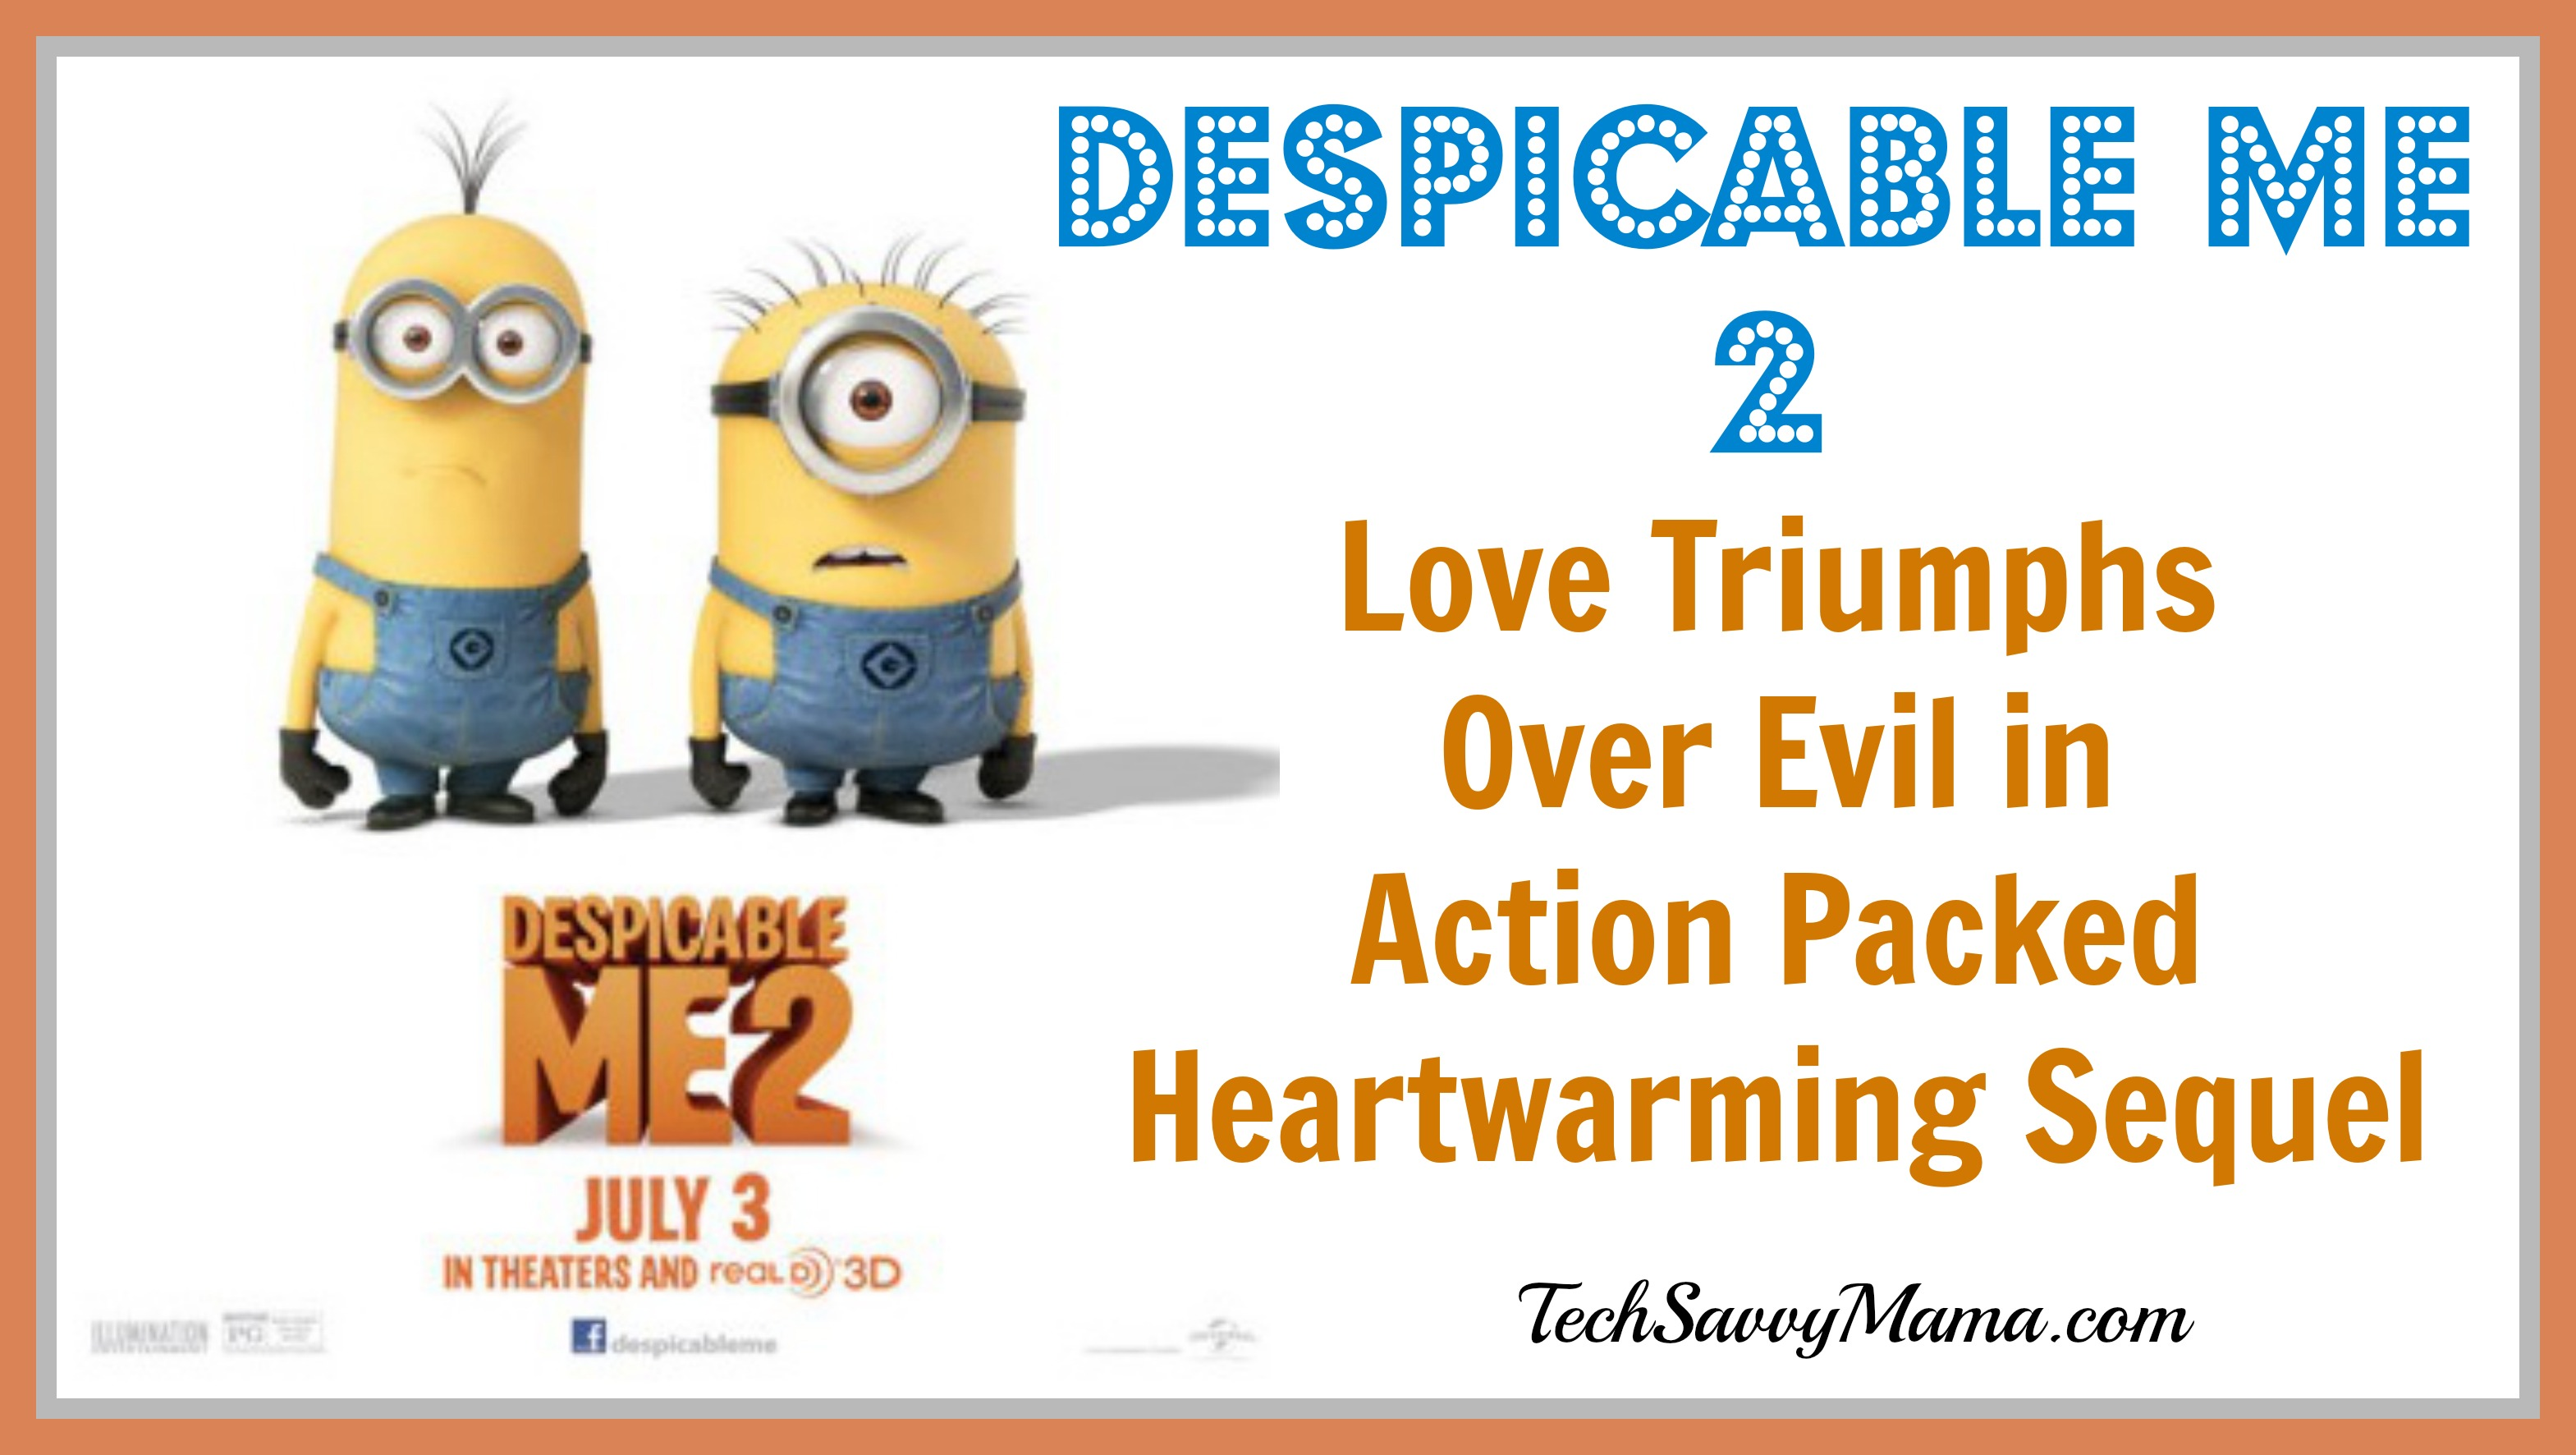 Despicable Me 2 Review: Love Triumphs Over Evil in Heartwarming Sequel #DM2Orlando